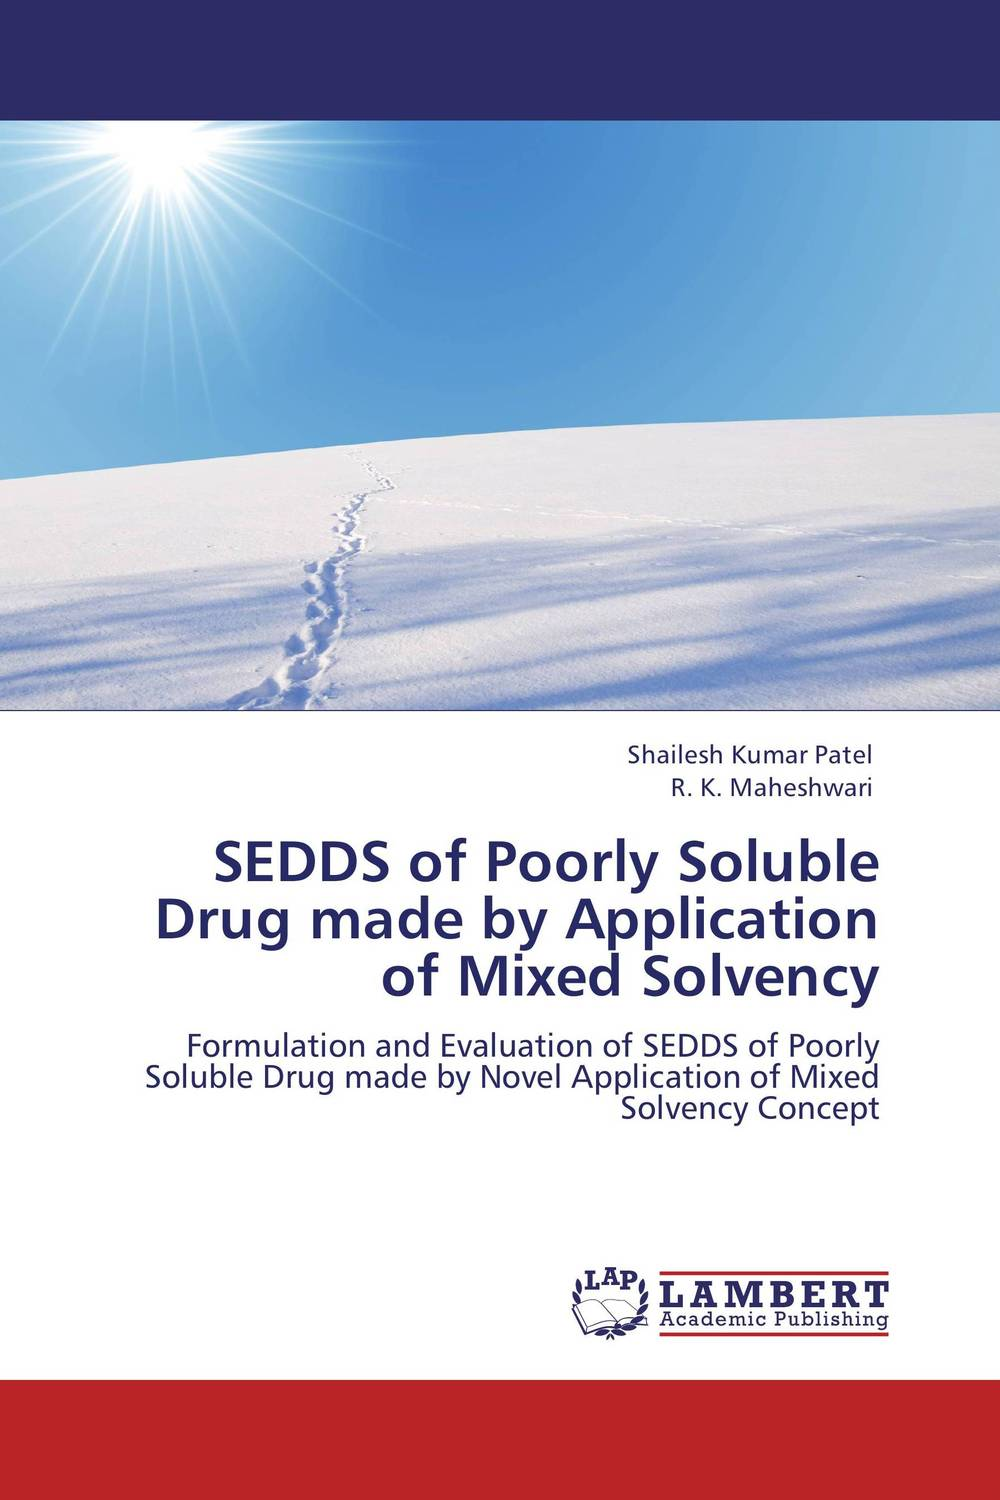 SEDDS of Poorly Soluble Drug made by Application of Mixed Solvency formulation and evaluation of microspheres by mixed solvency concept